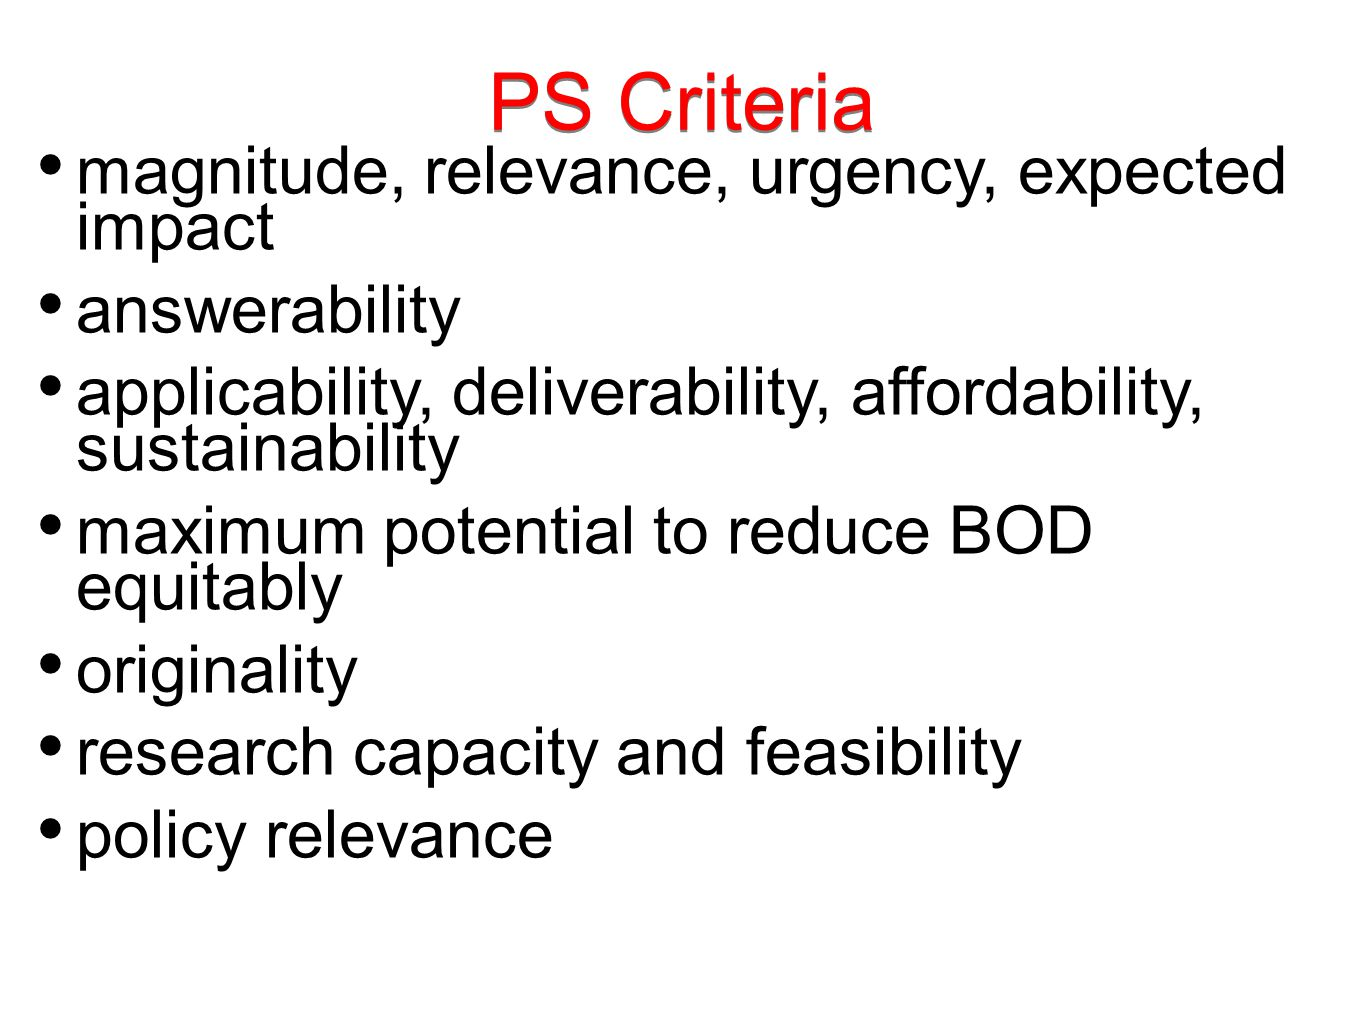 PS Criteria magnitude, relevance, urgency, expected impact answerability applicability, deliverability, affordability, sustainability maximum potential to reduce BOD equitably originality research capacity and feasibility policy relevance